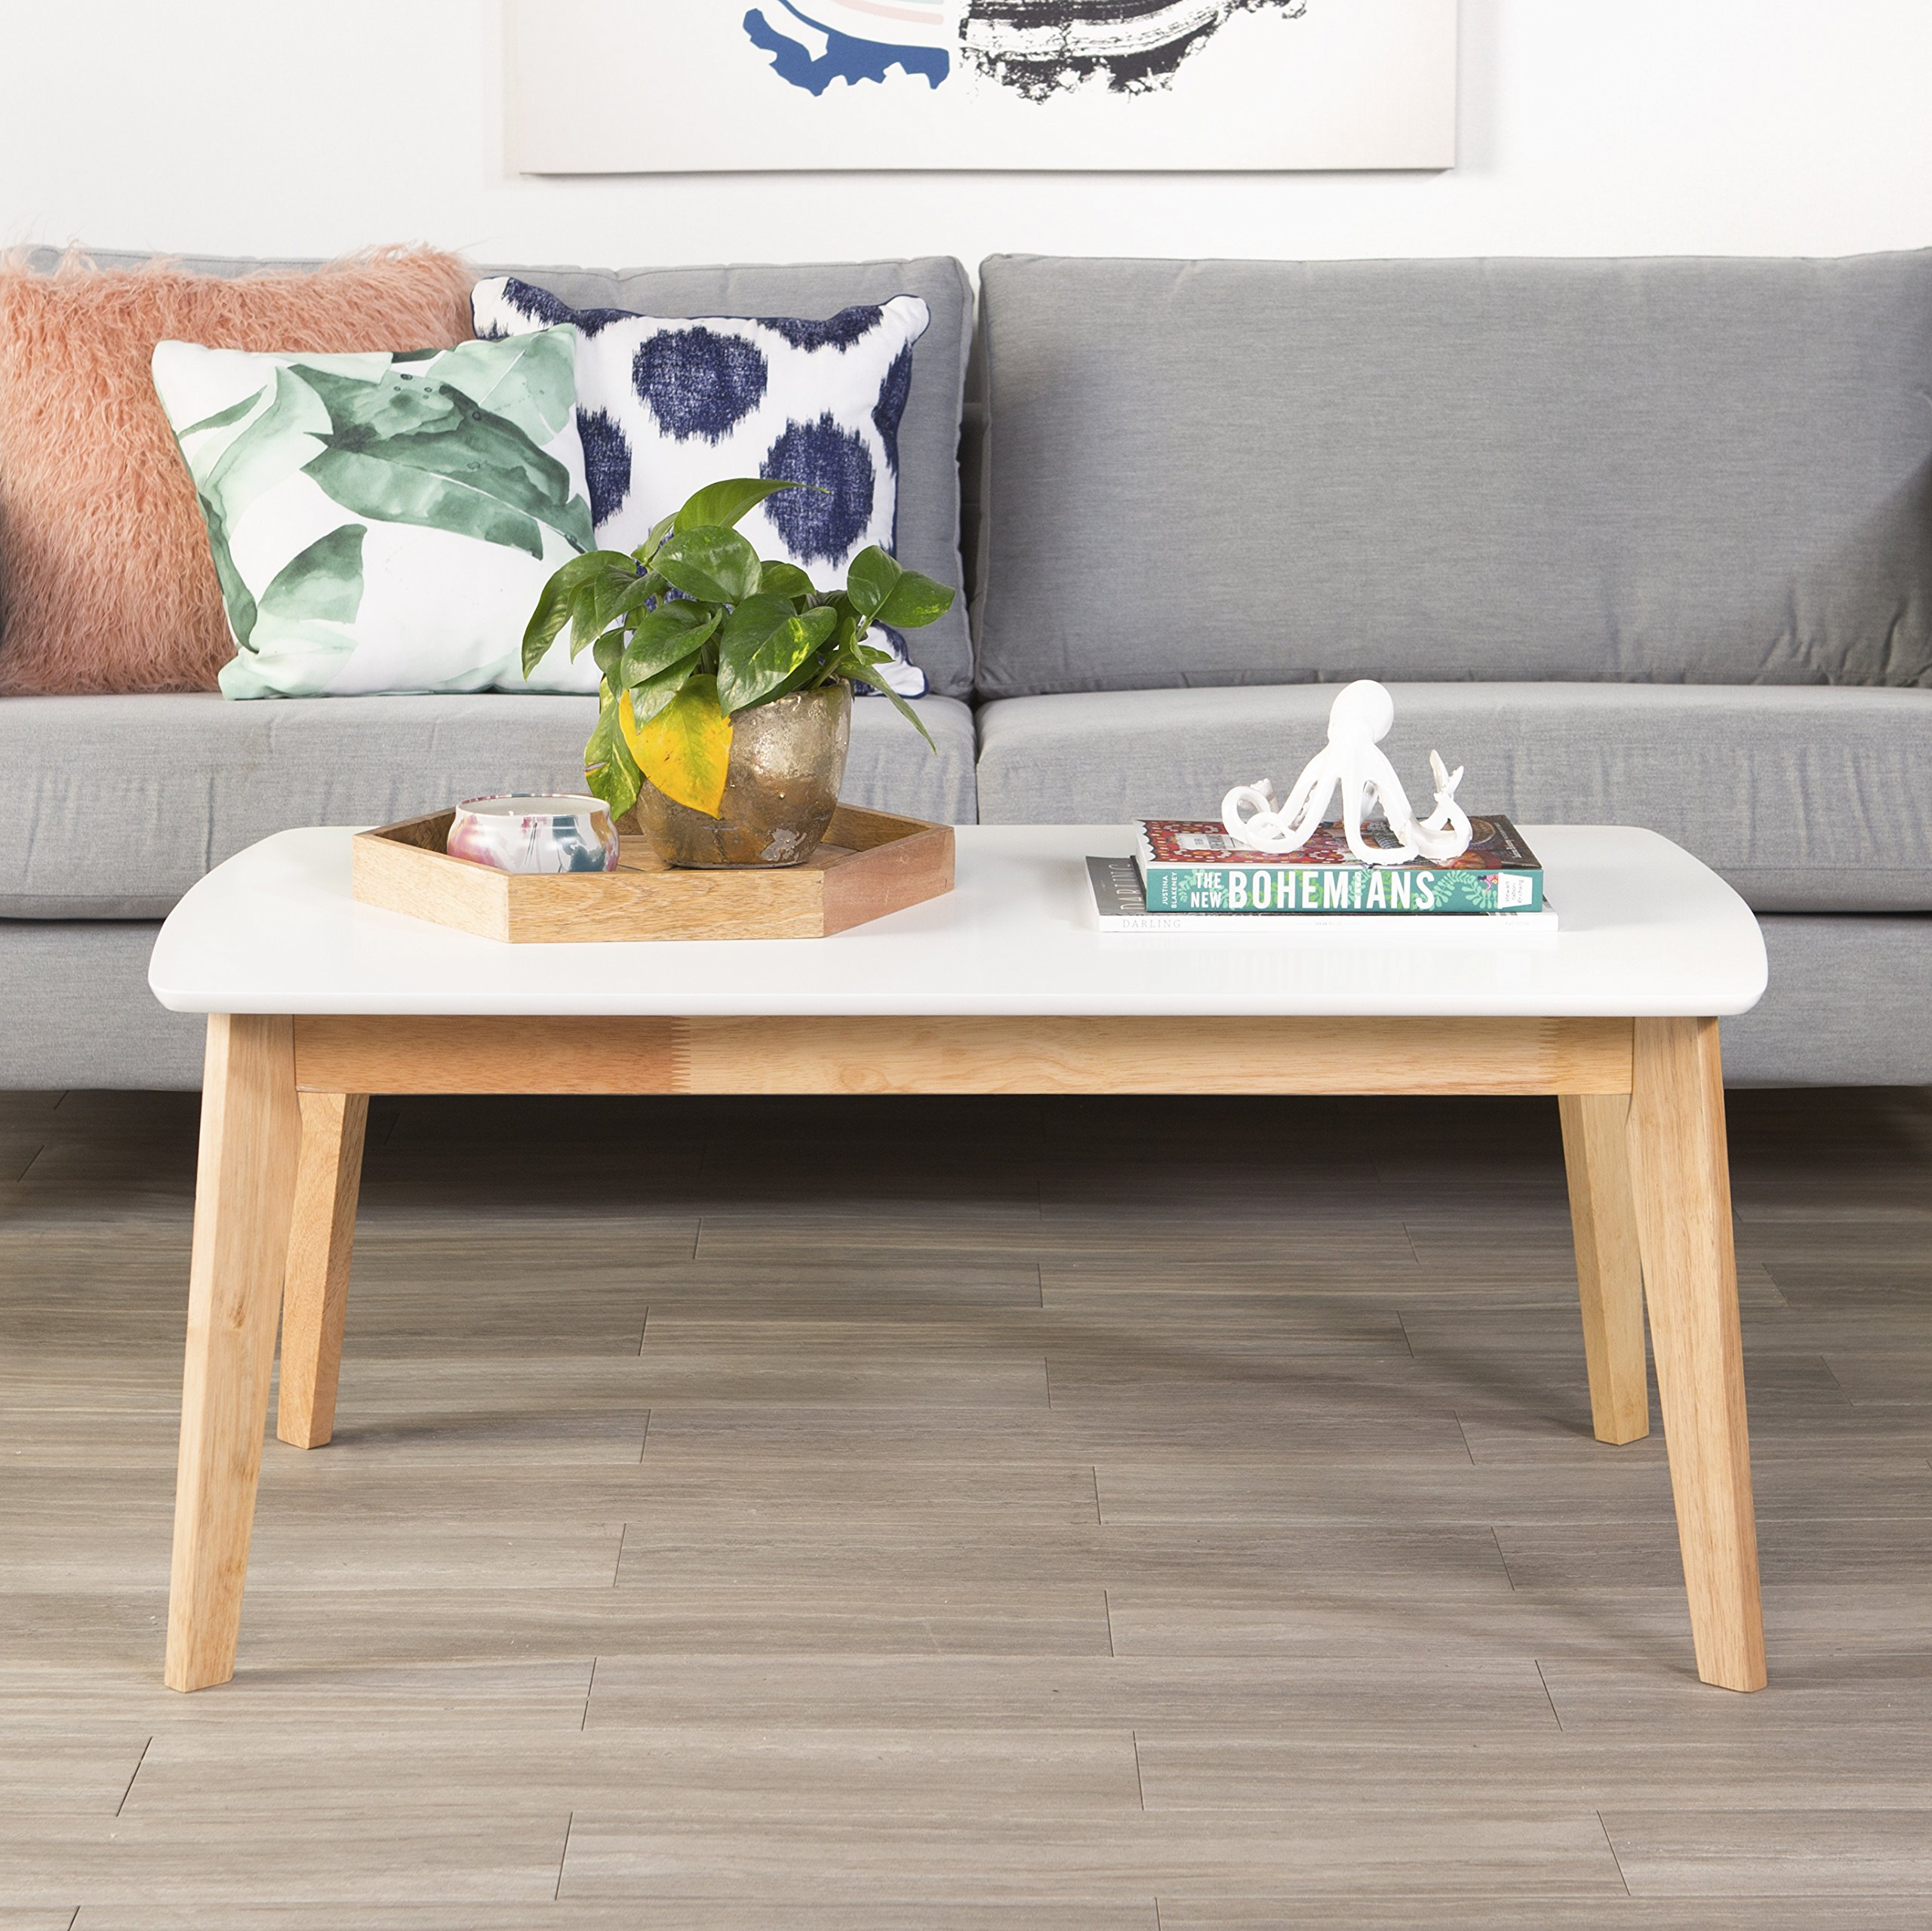 WE Furniture Retro Modern Coffee Table - White/Natural